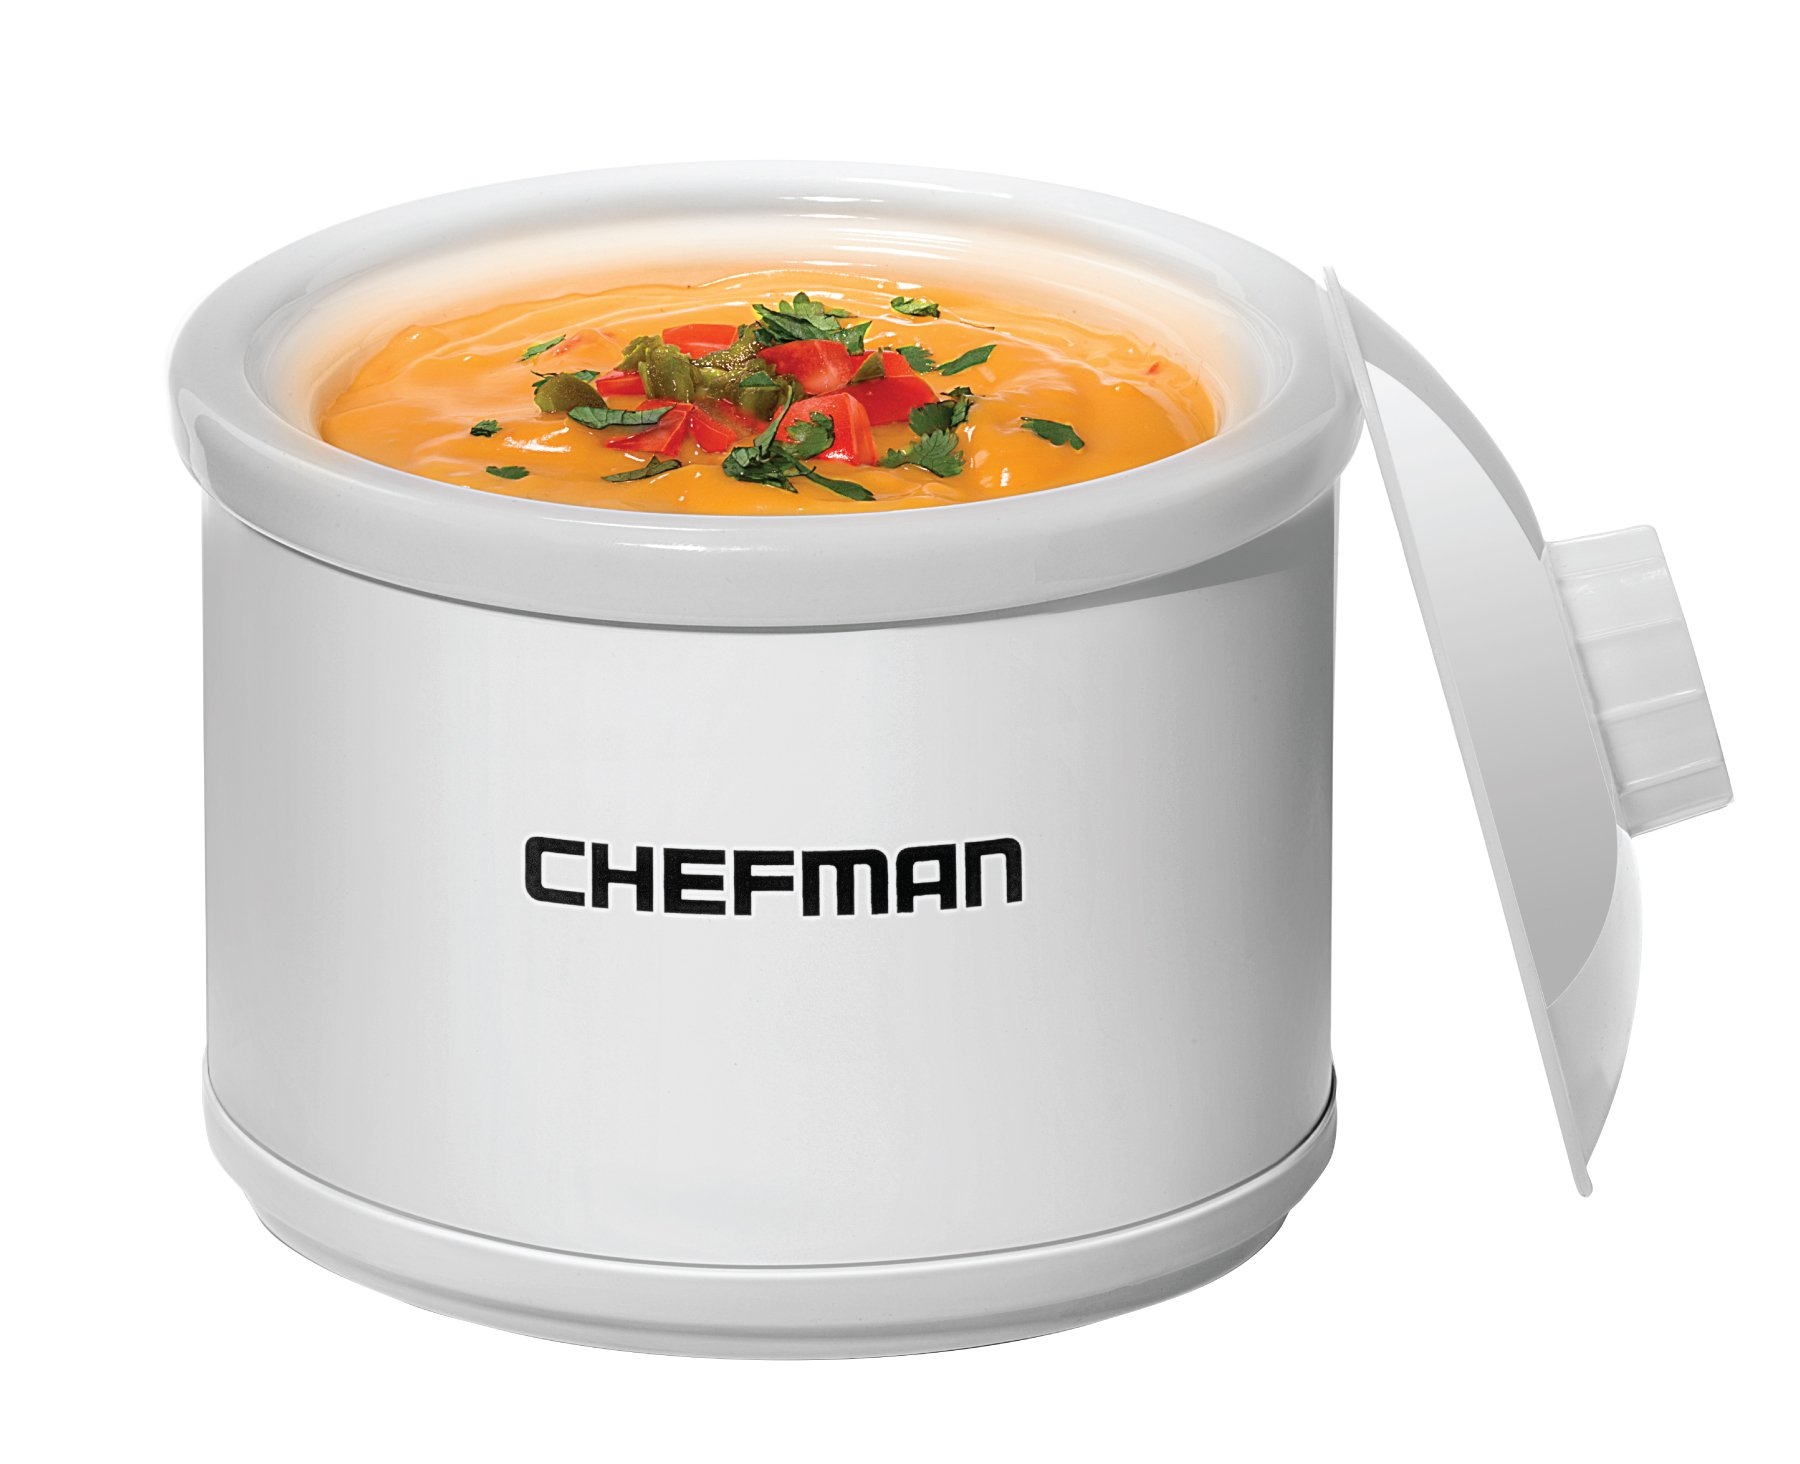 Chefman Mini Dipper Fondue Maker Food Warmer, Extra Small, 21 oz, White